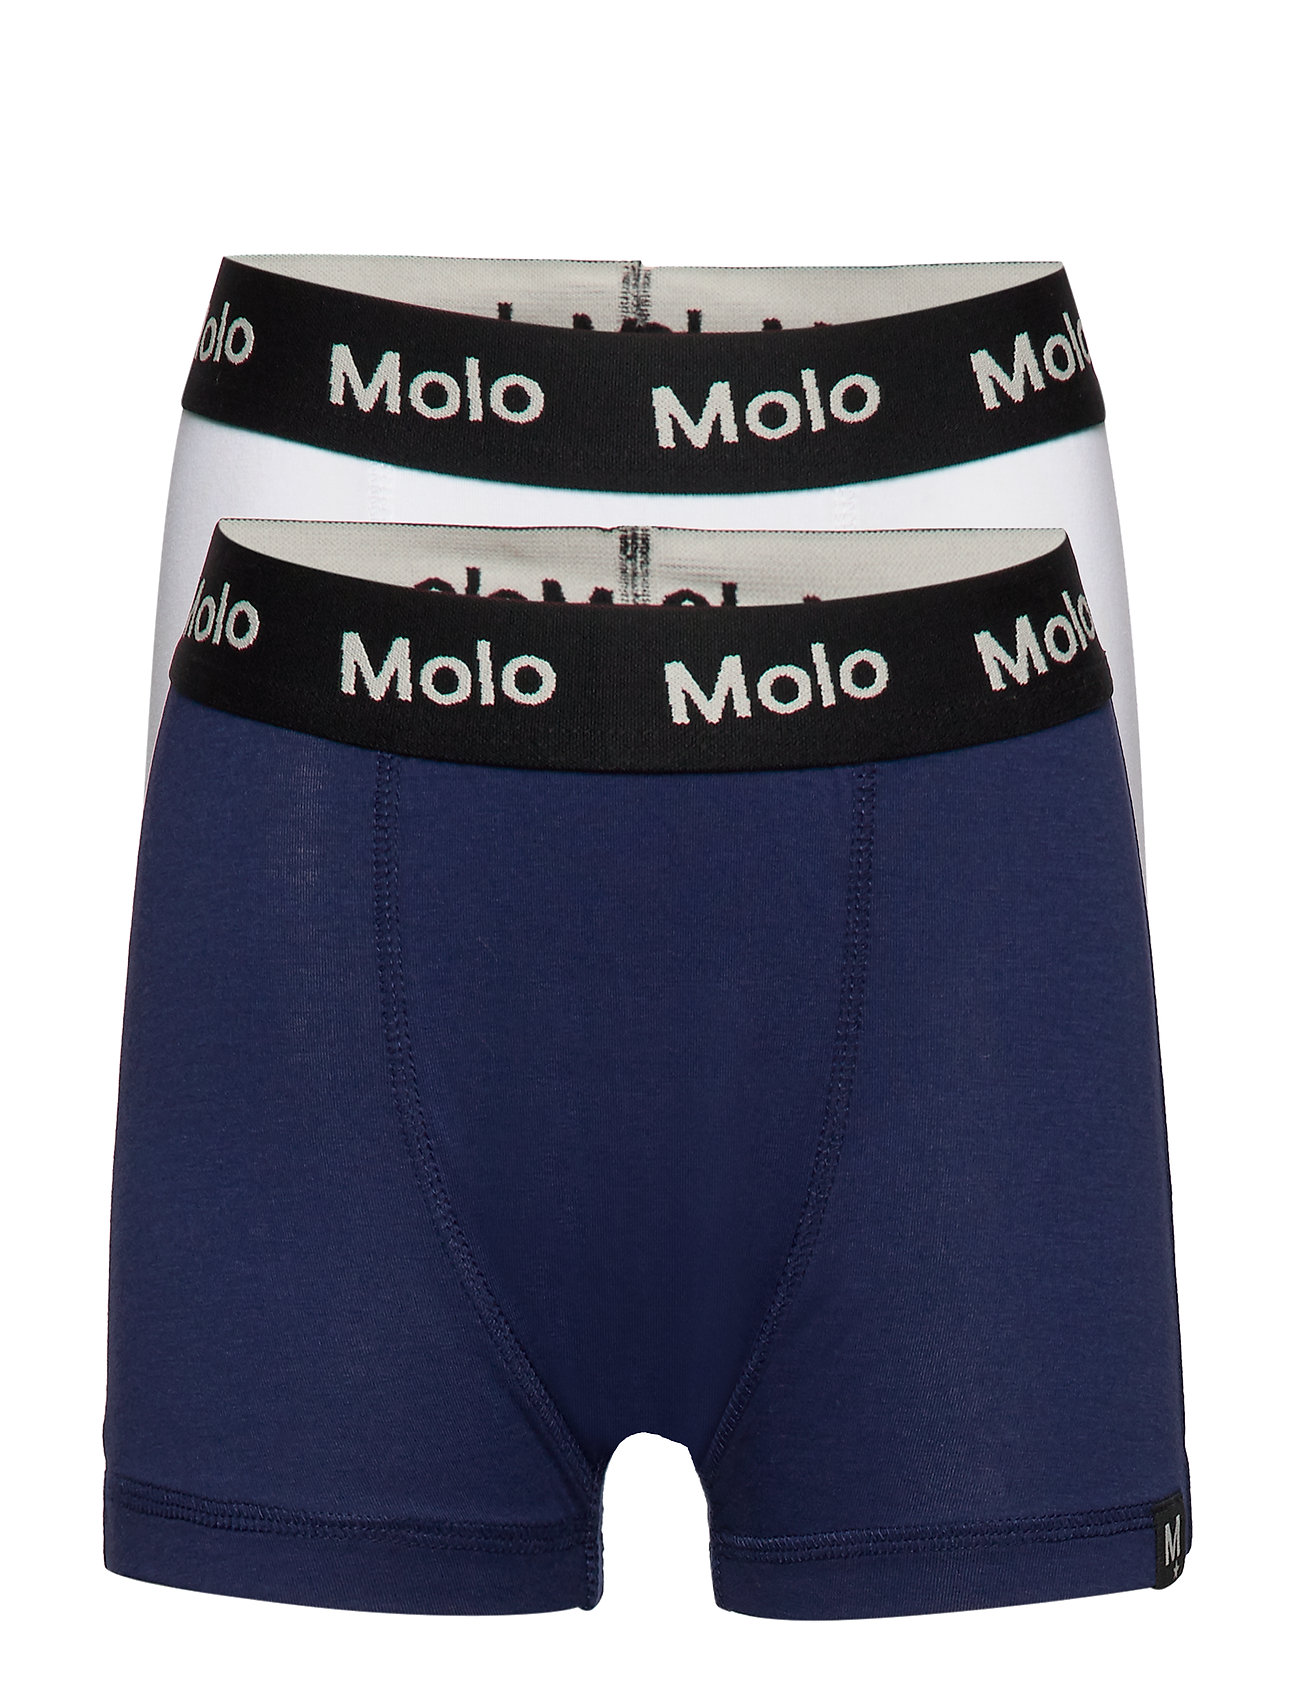 Molo Justin 2-pack - SAILOR